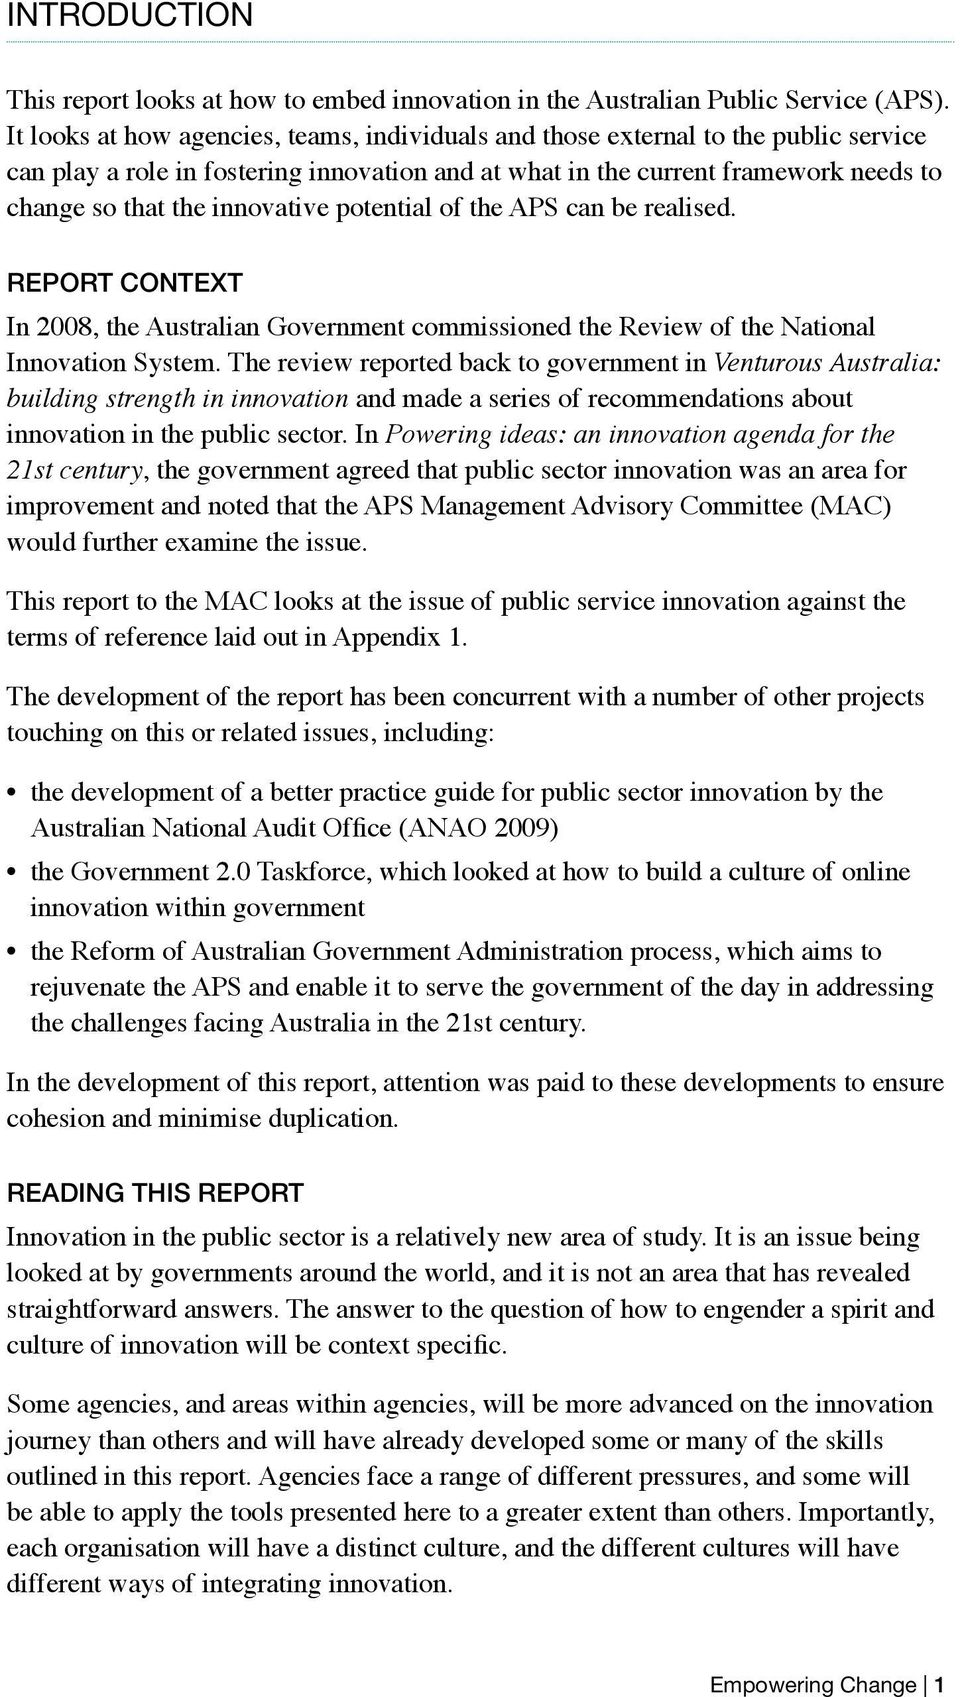 innovative potential of the APS can be realised. REPORT CONTEXT In 2008, the Australian Government commissioned the Review of the National Innovation System.